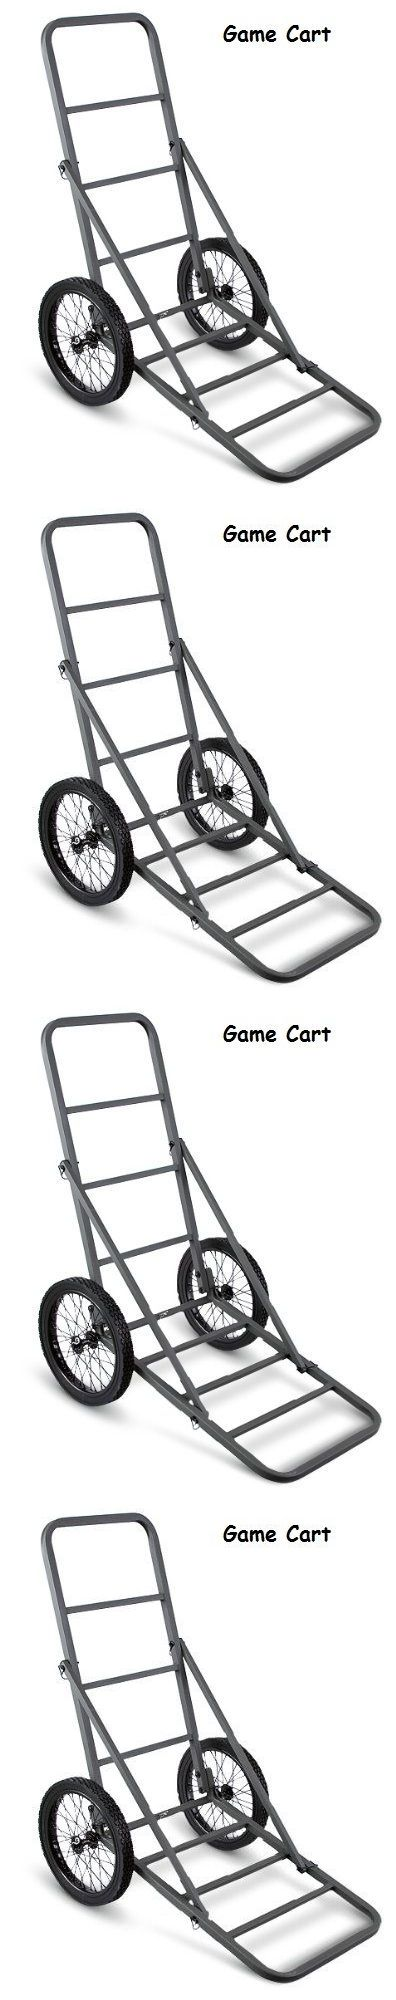 Game Carts Gambrels and Hoists 177888: Deer Cart Game Hauler Carts Hunting Supplies Cross Bow Tree Stands Blinds New -> BUY IT NOW ONLY: $74.89 on eBay!